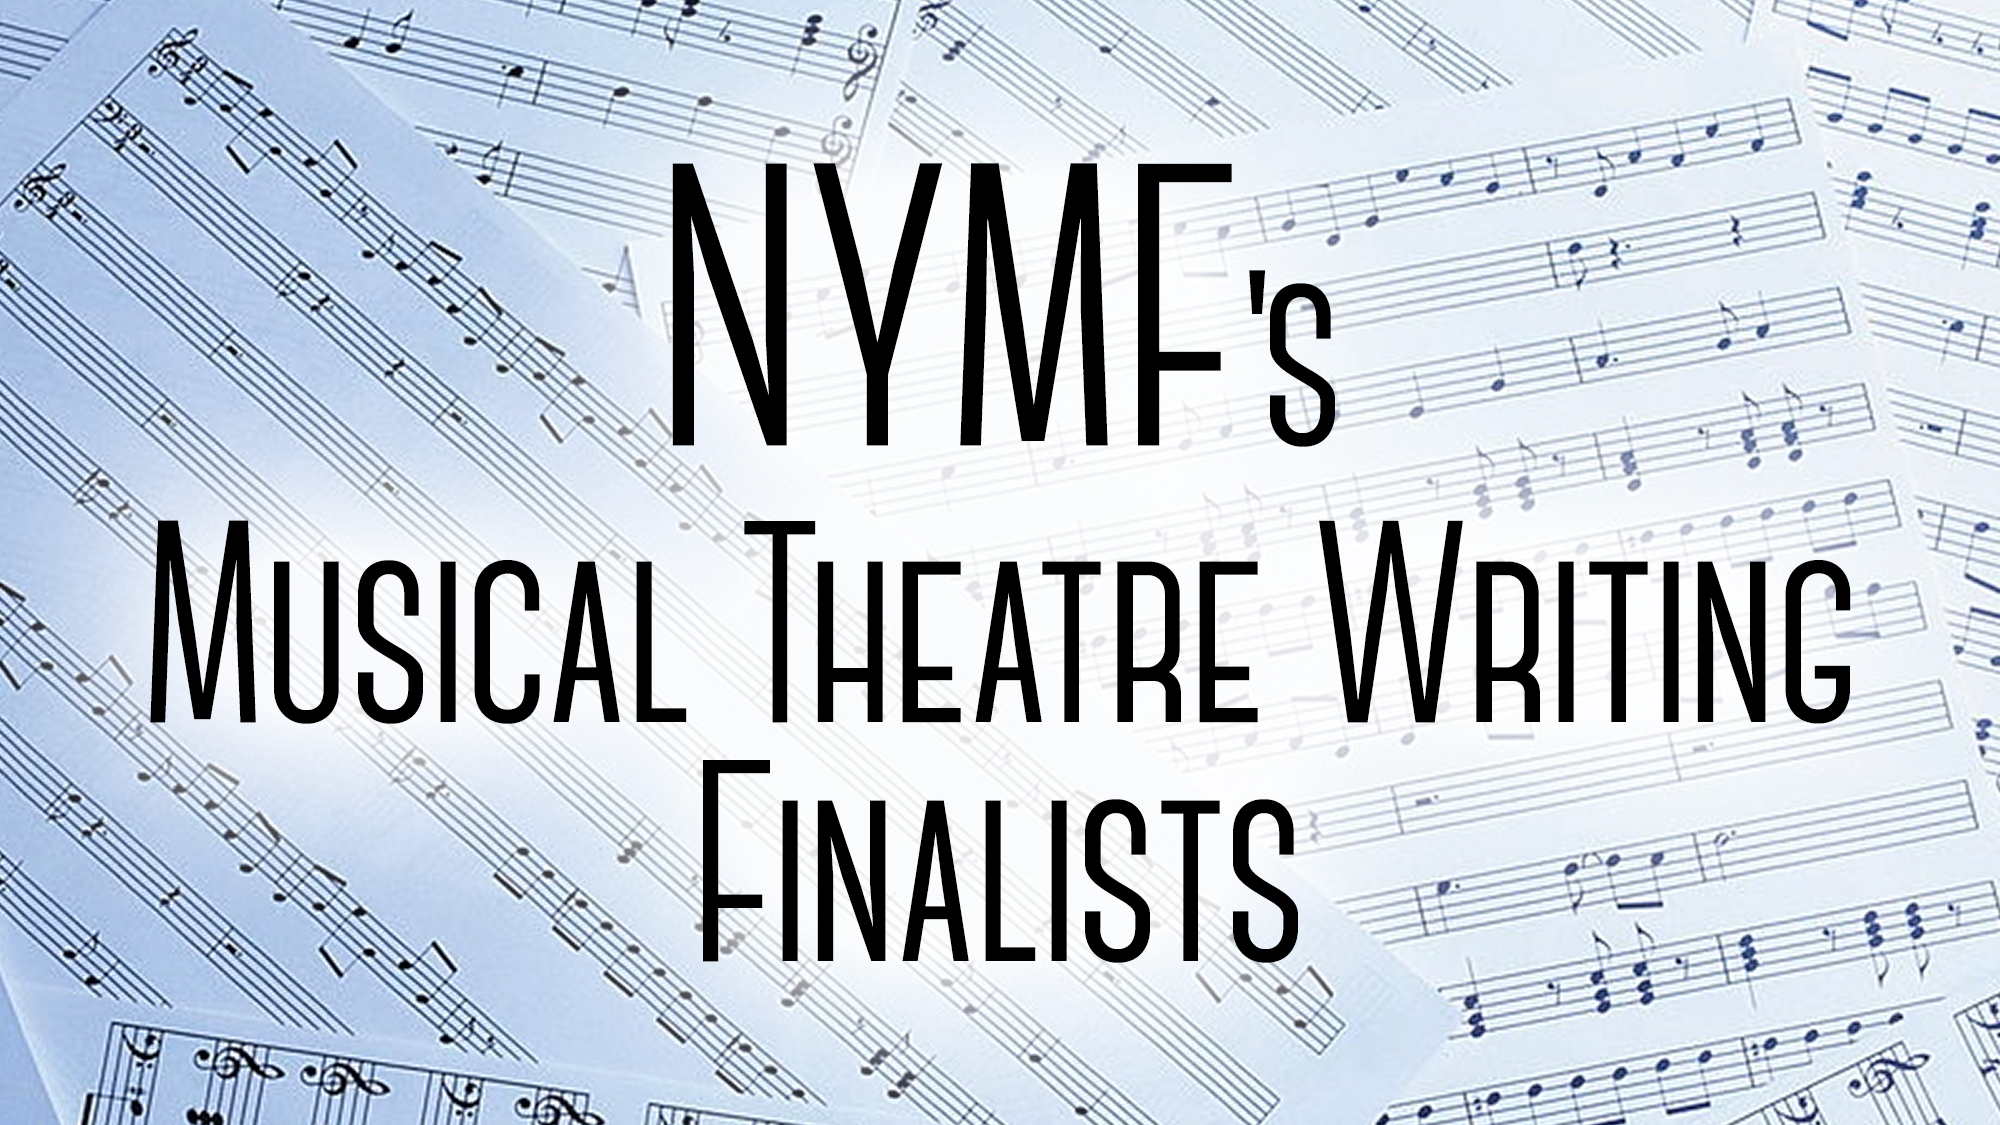 NYMF's Musical Theatre Writing Finalists